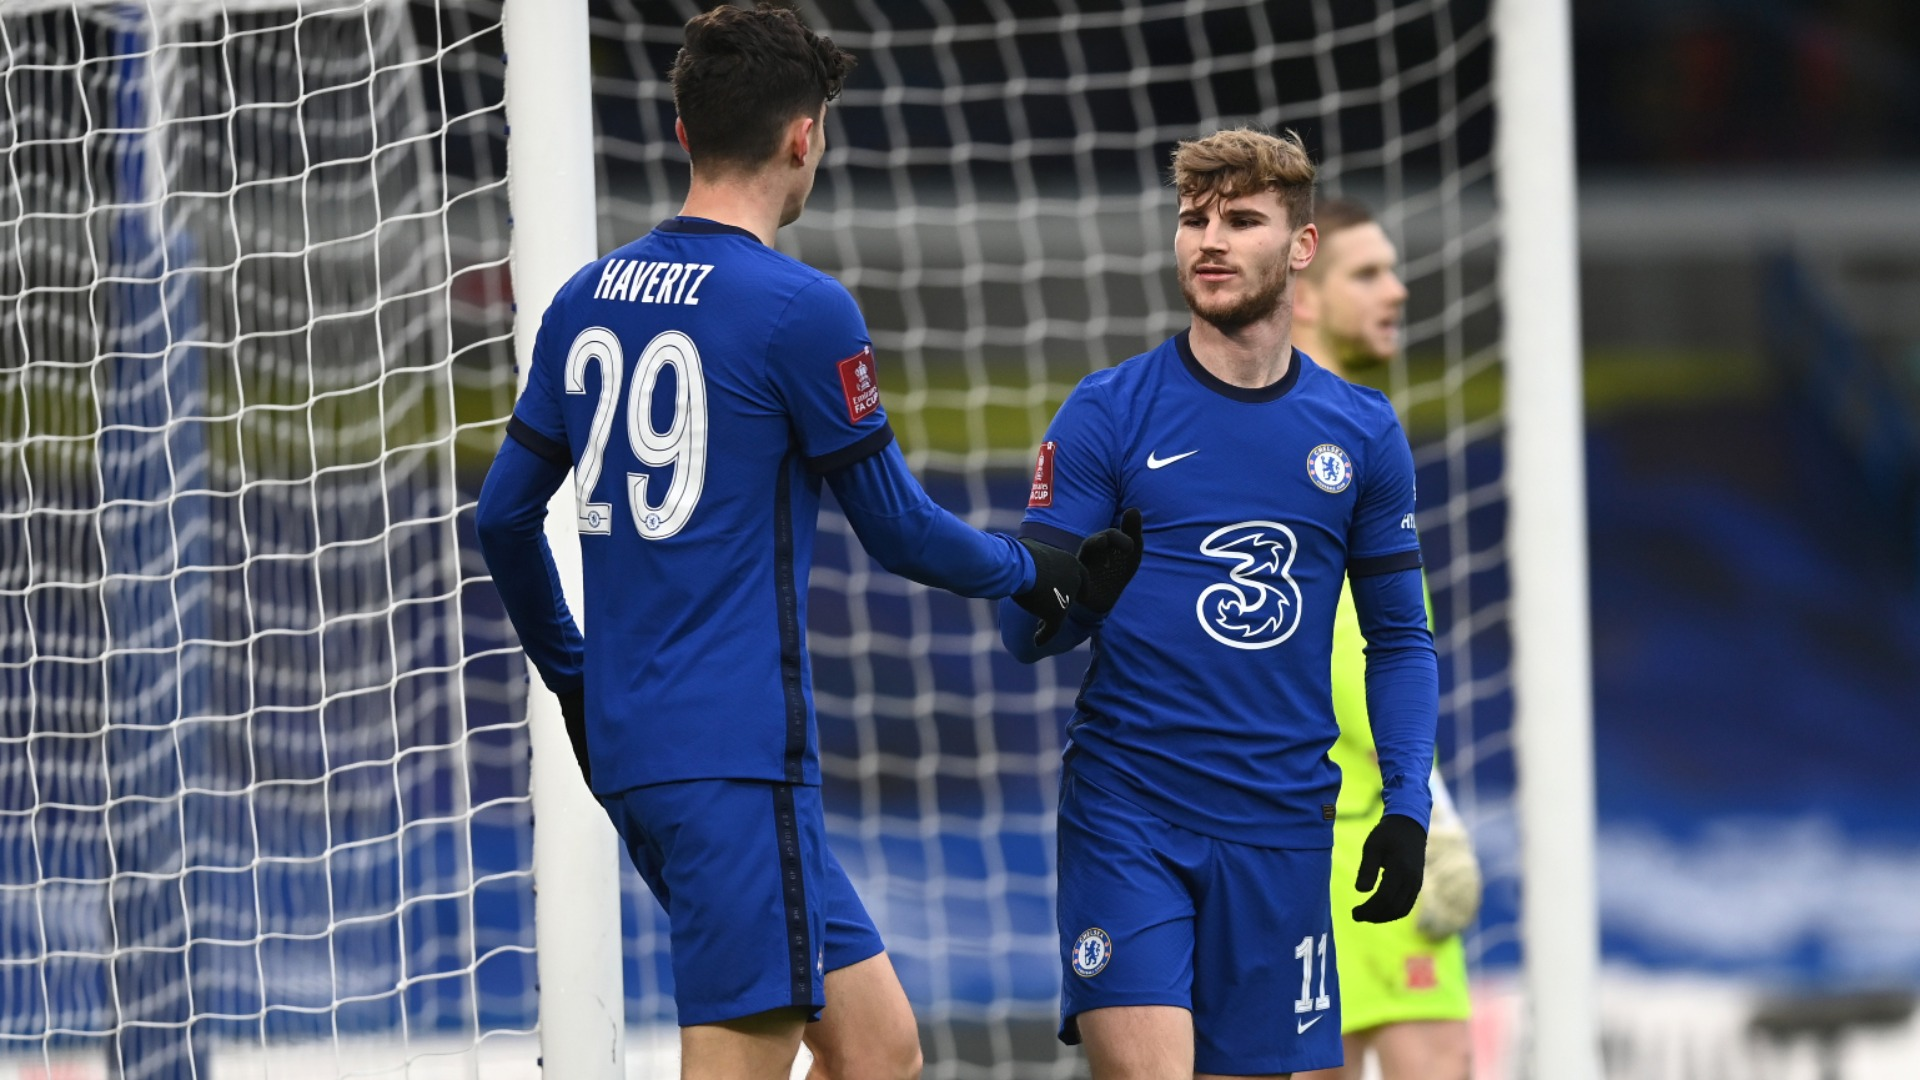 Chelsea 4-0 Morecambe: Werner ends goal drought in routine FA Cup win